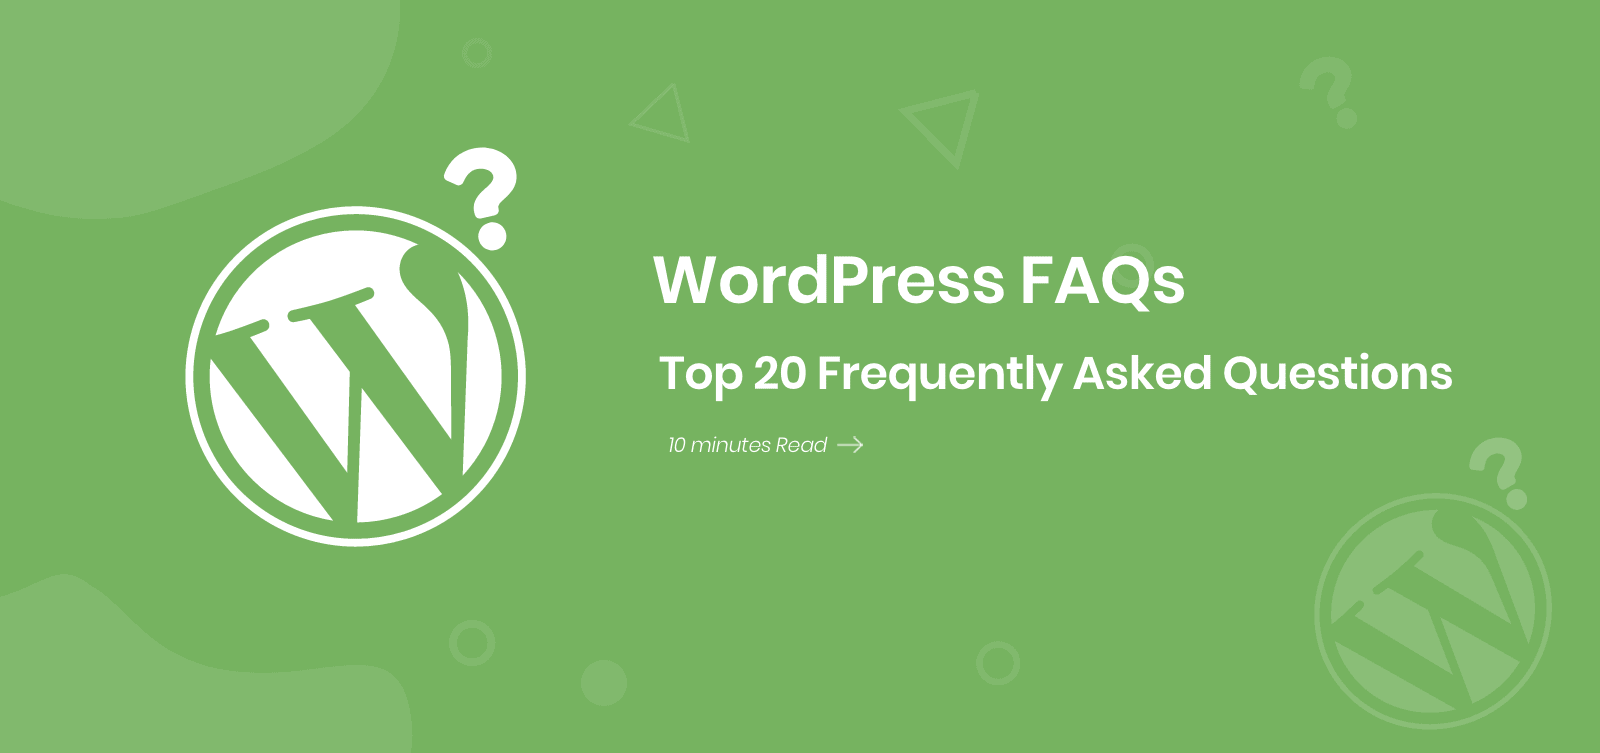 top 20 WordPress FAQs